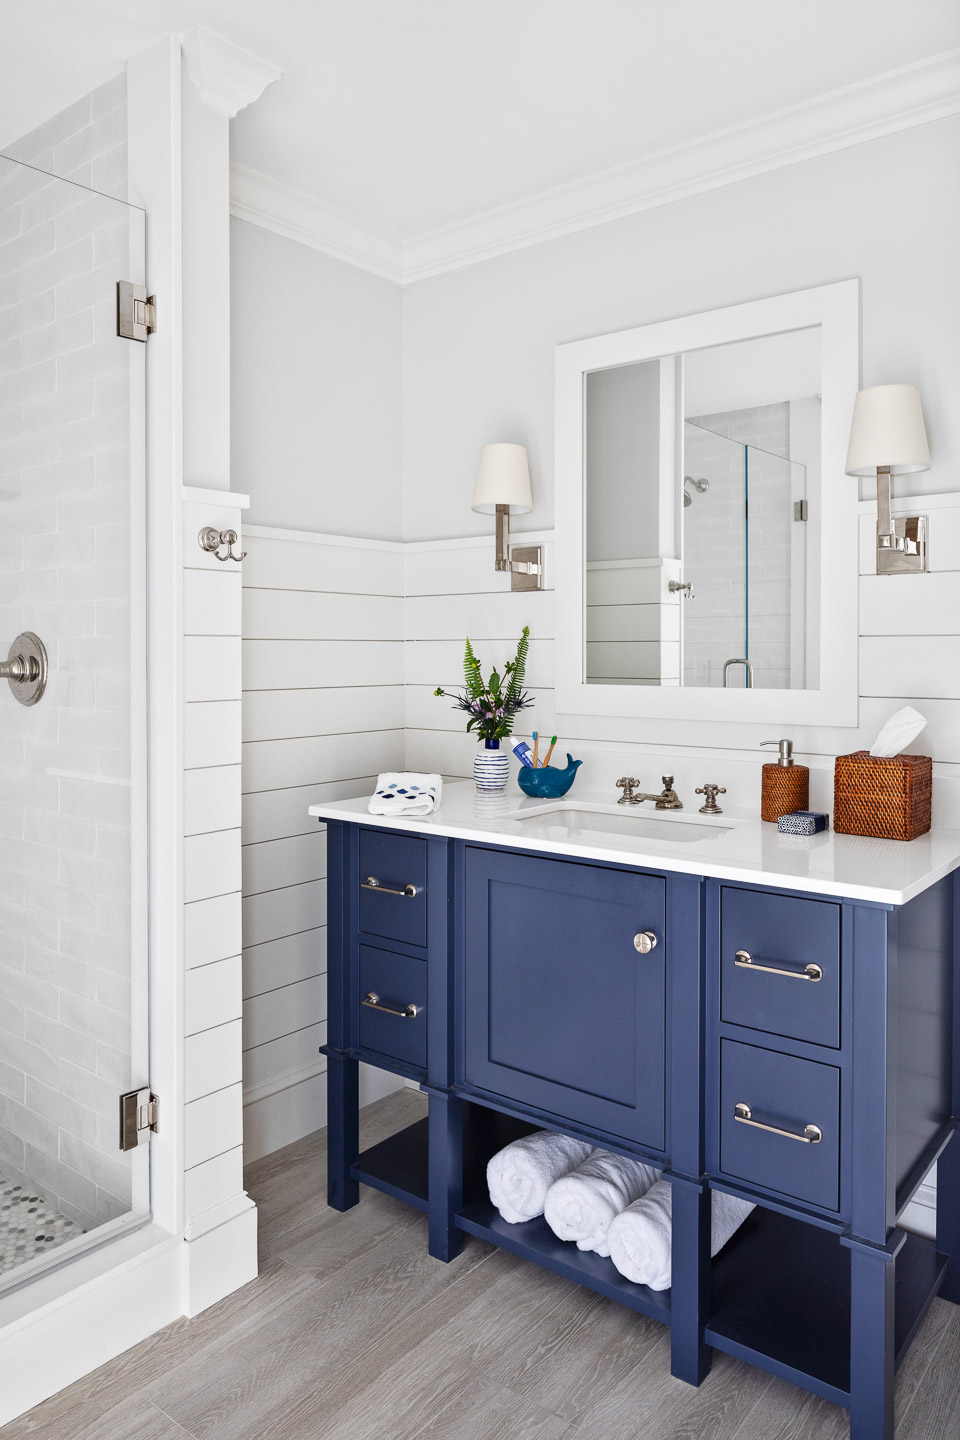 Rhode Island, interior design, interior designer, bathroom design ideas, shiplap, blue vanity